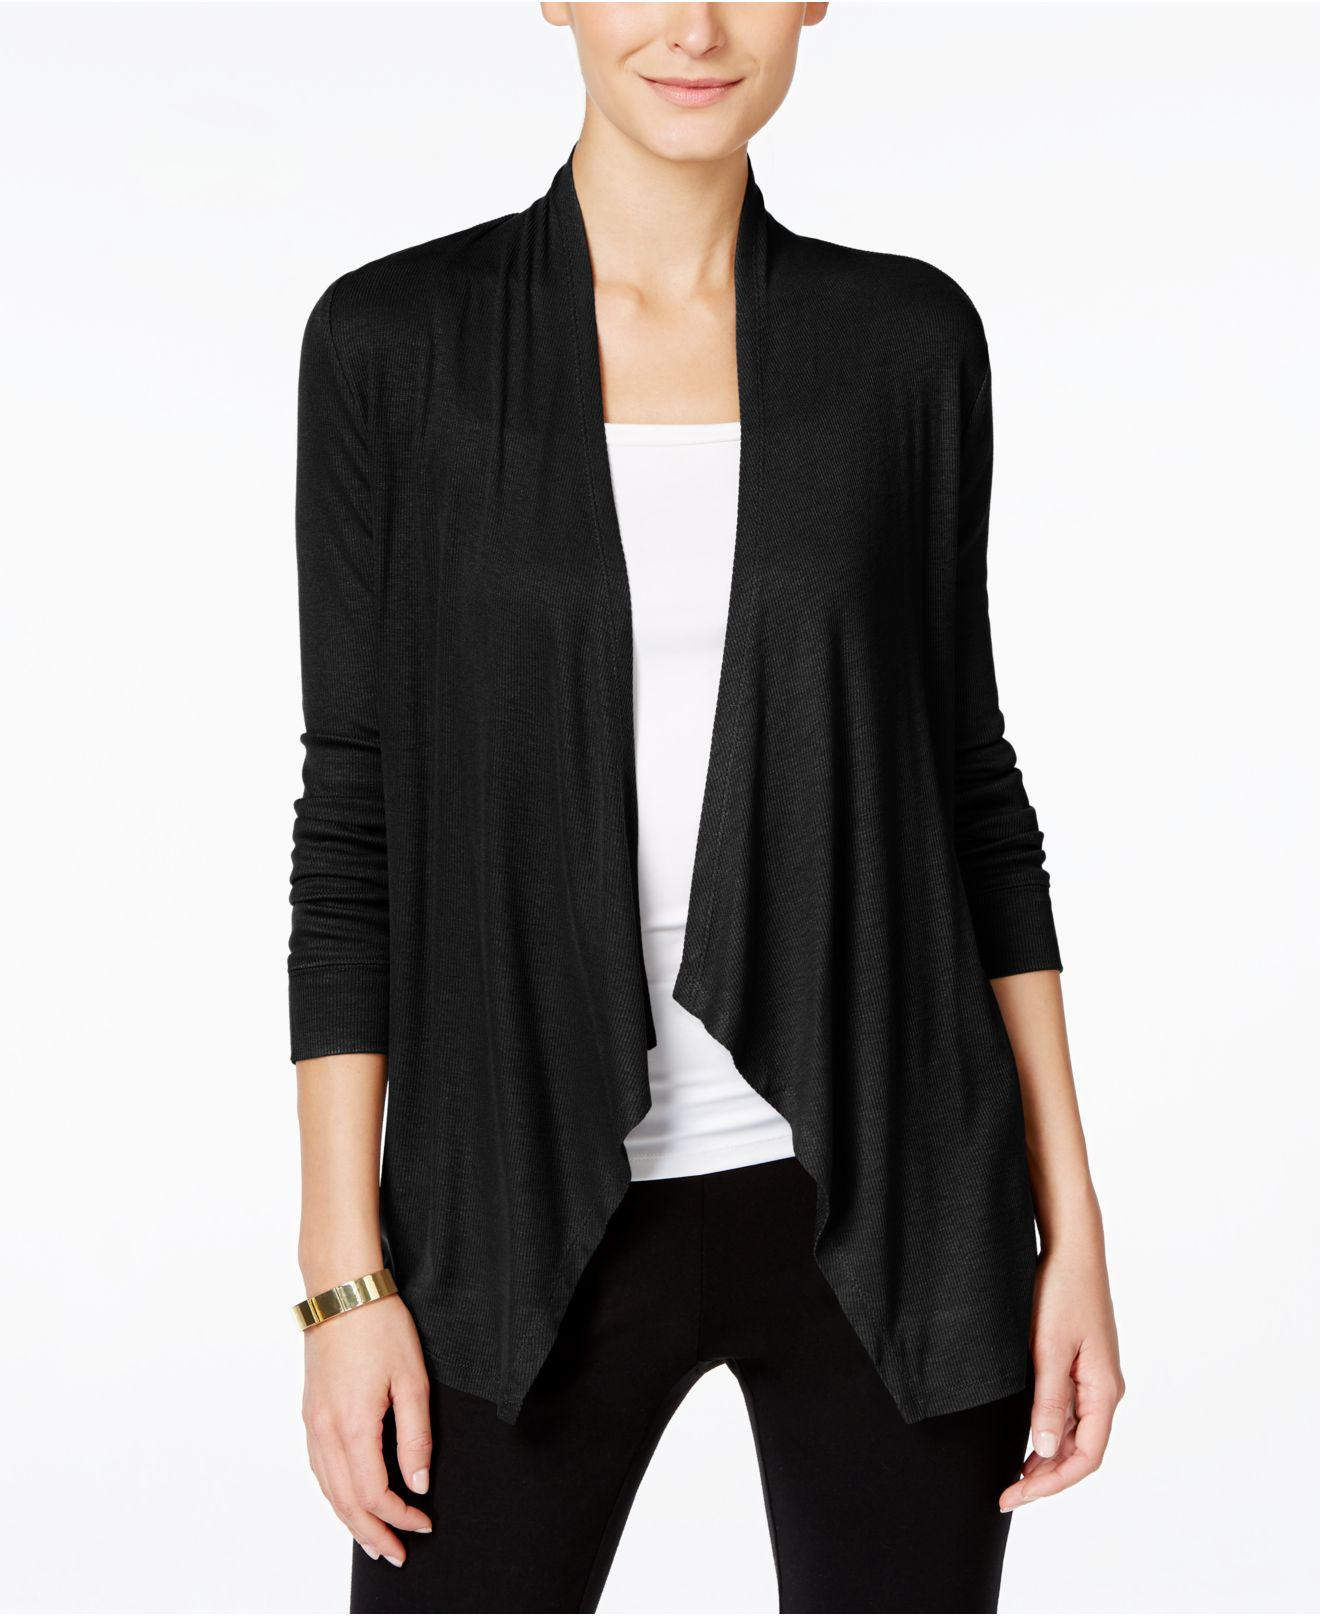 Inc international concepts Long-sleeve Open-front Cardigan in ...